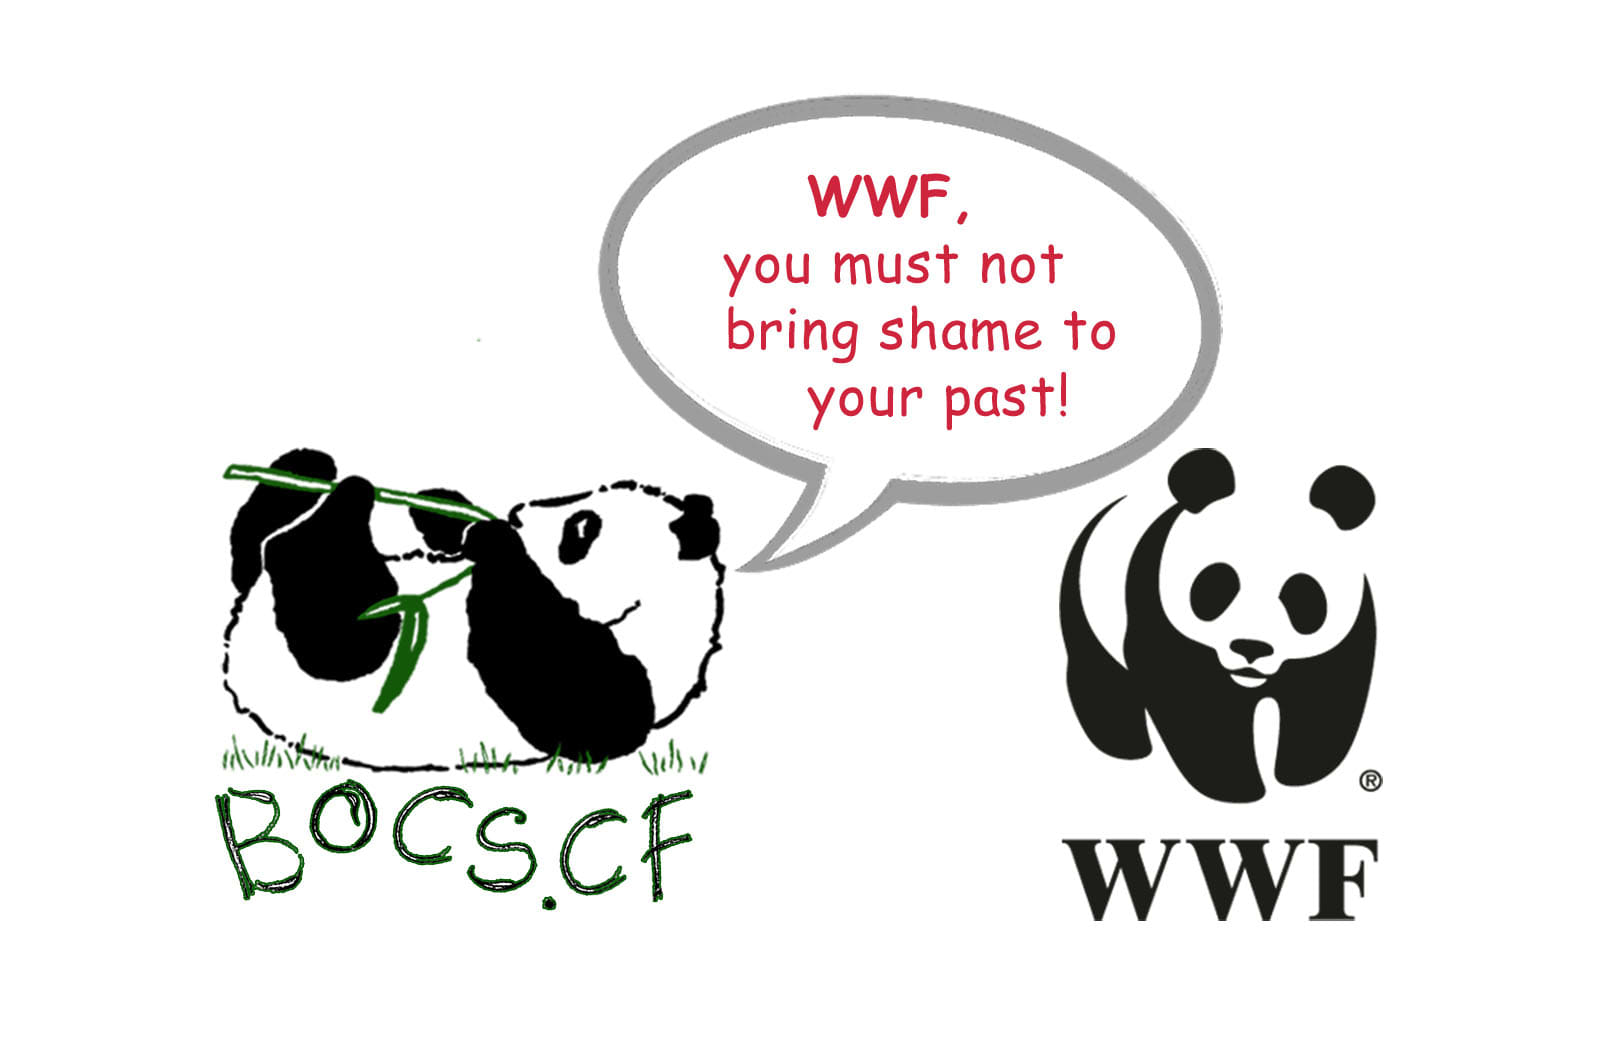 WWF's calculations about Europe lack credibility | BOCS Foundation